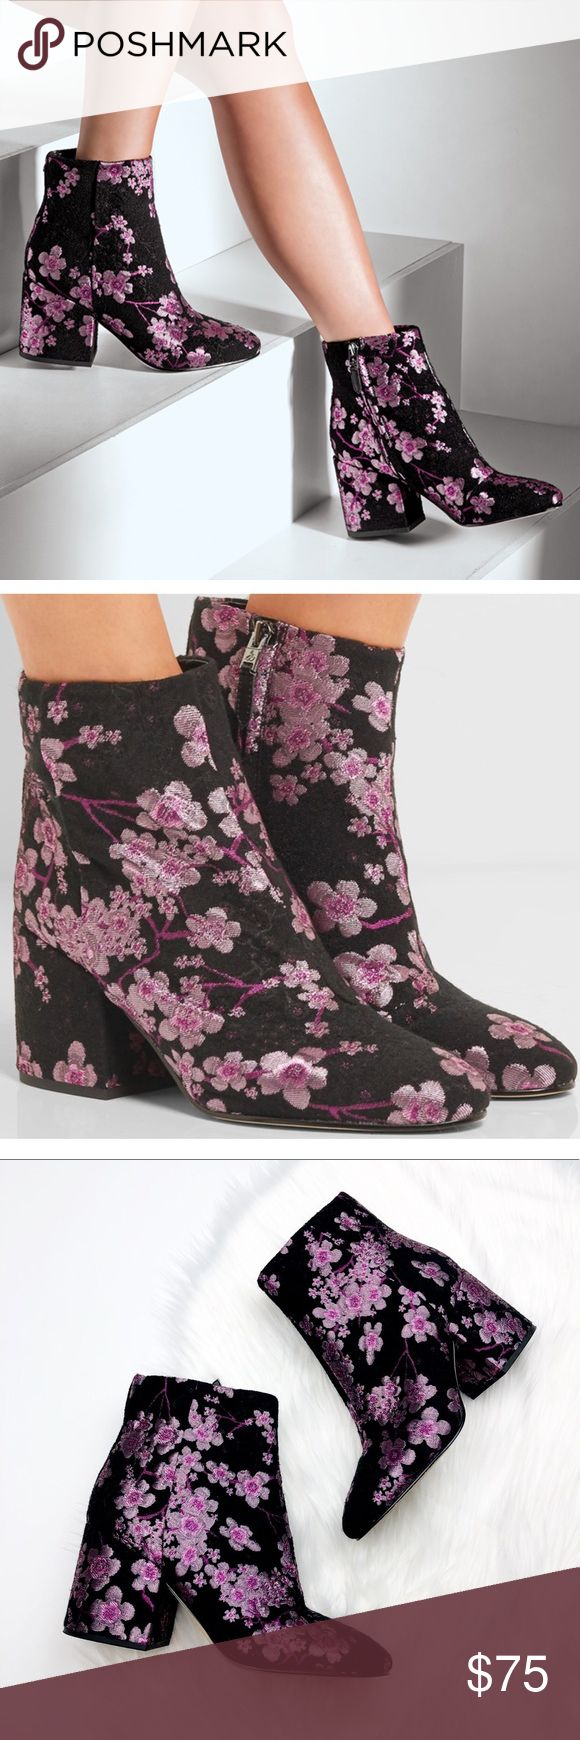 Sam Edelman Cherry Blossom Booties Excellent pre owned condition! So cute and perfect dressed up or down. Size 10. Black with purple berry blossom floral. No trades!! Sam Edelman Shoes Ankle Boots & Booties